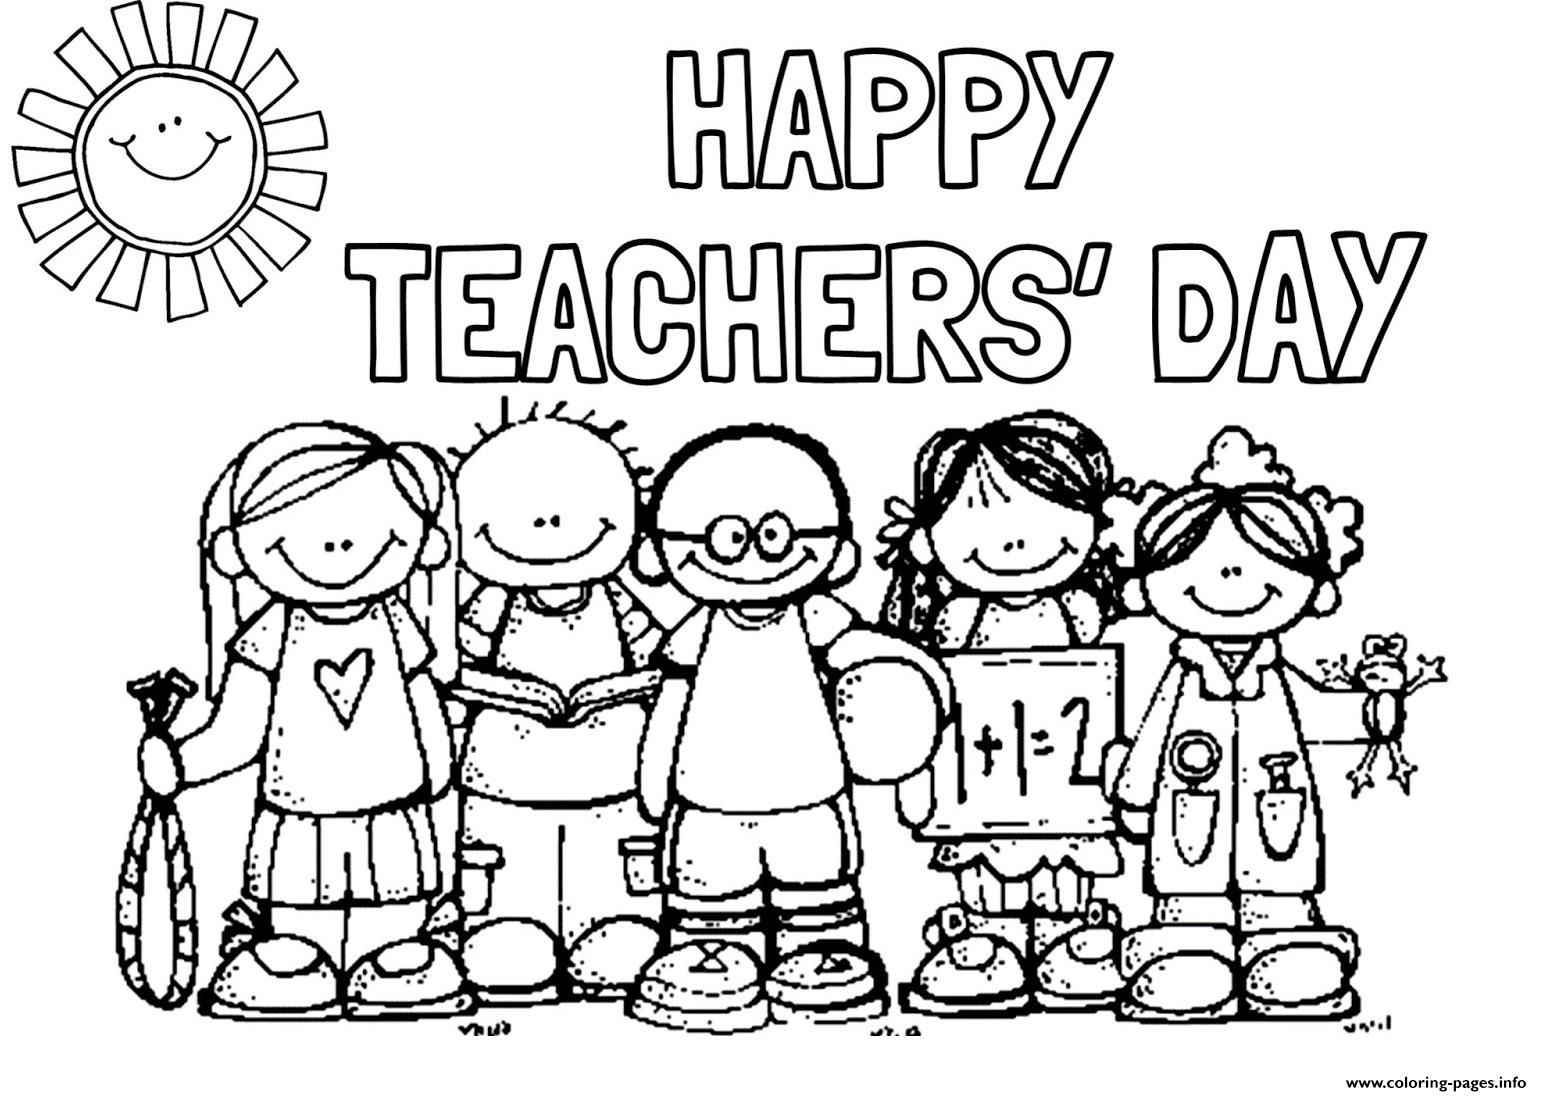 Print Happy Teachers Day Students Picture Coloring Pages Happy Teachers Day Teachers Day Student Picture